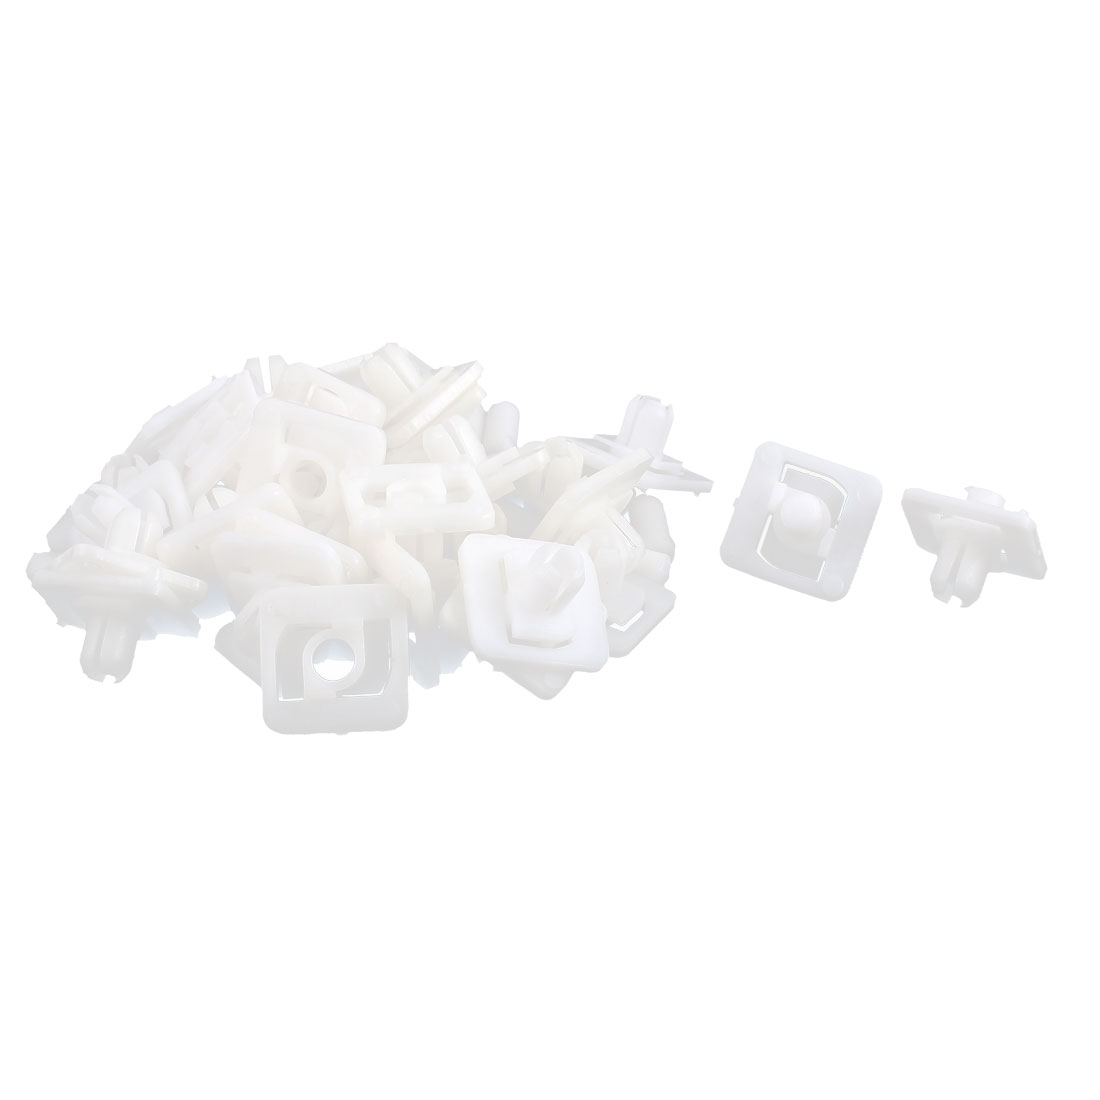 Car Plastic Push Type Retainer Fastener Clip Rivet White 9mm Hole 30pcs